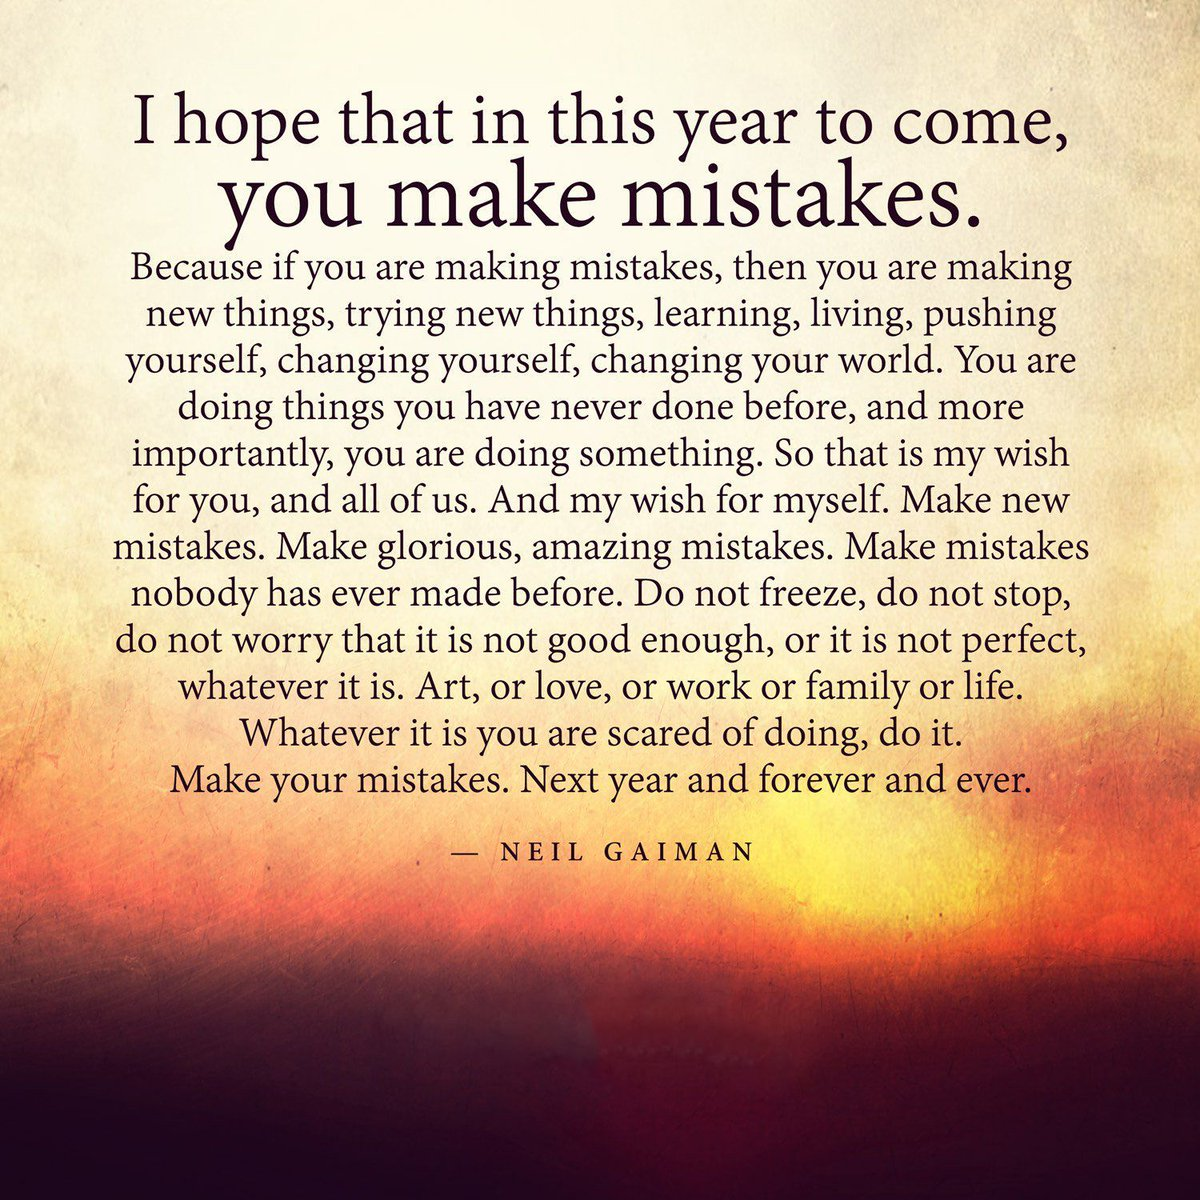 [Image] for the new year